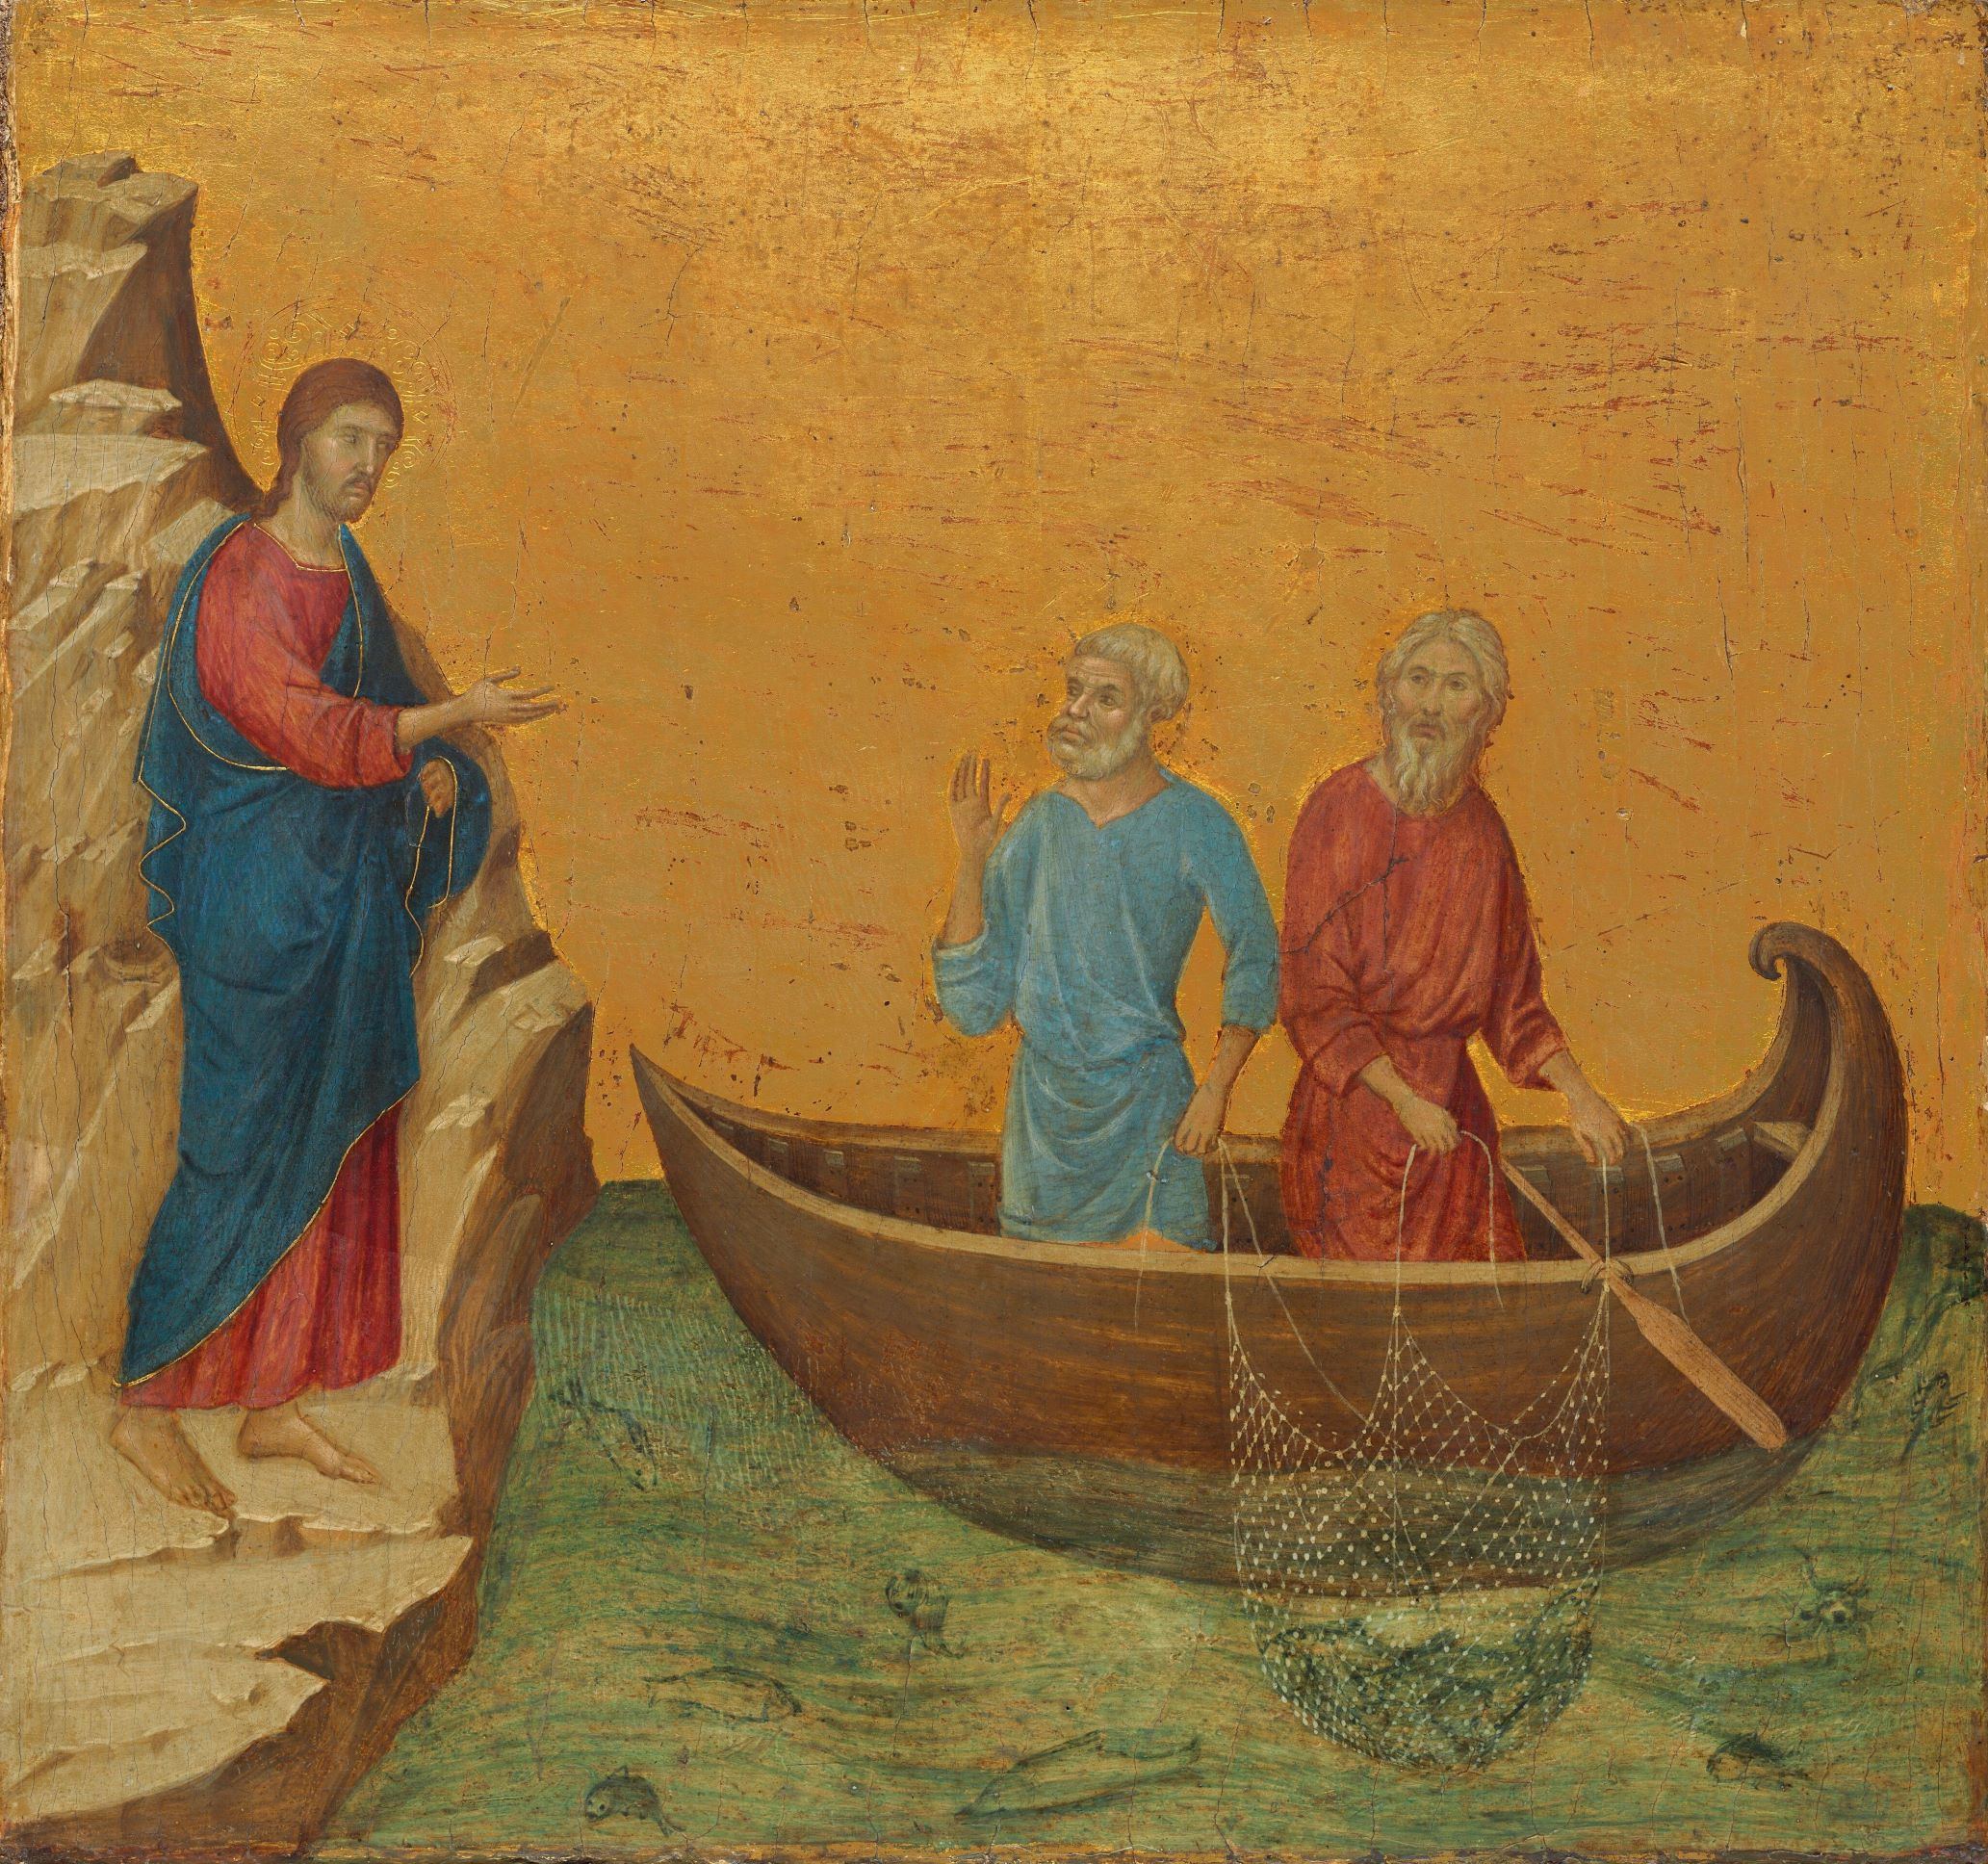 """This panel was located on the back of the altarpiece, where the imagery was devoted to Christ's Passion and his mission as teacher—apt subjects for the rear panels, which would have been seen only by clergy standing behind the altar. Here we find Jesus calling his first disciples. He approaches two fishermen at work on the Sea of Galilee: Simon, called Peter, and his brother Andrew. Their net is full when Jesus says to them: """"Follow me, and I will make you fishers of men"""" (Matthew 4:18)."""